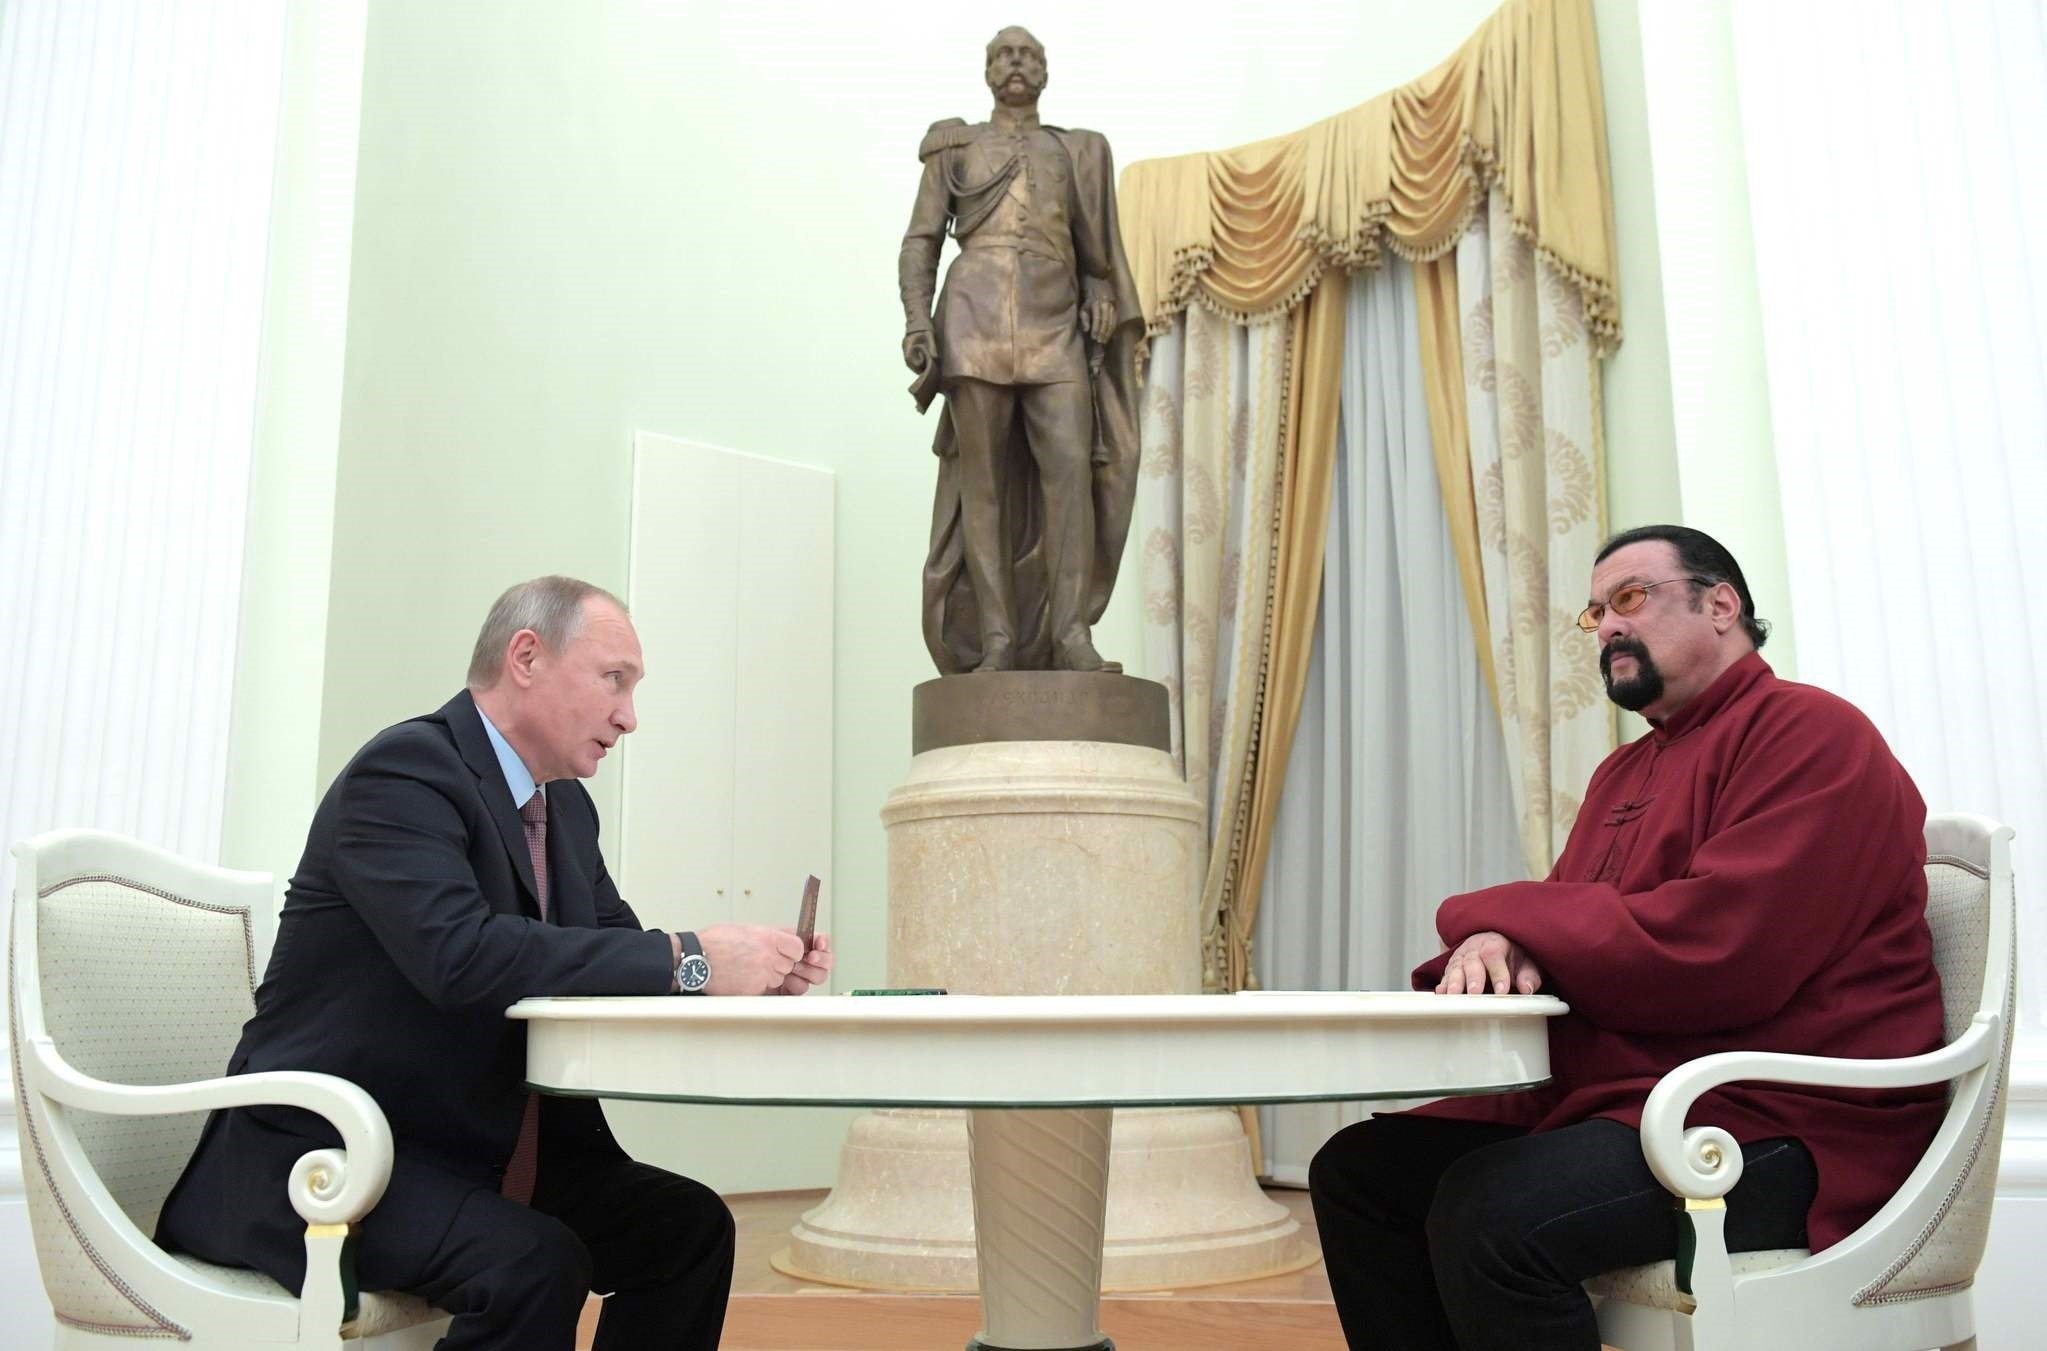 Putin (L) holds a Russian passport before presenting it to US action hero actor Steven Seagal during a meeting at the Kremlin in Moscow on Nov. 25, 2016. (AFP Photo)